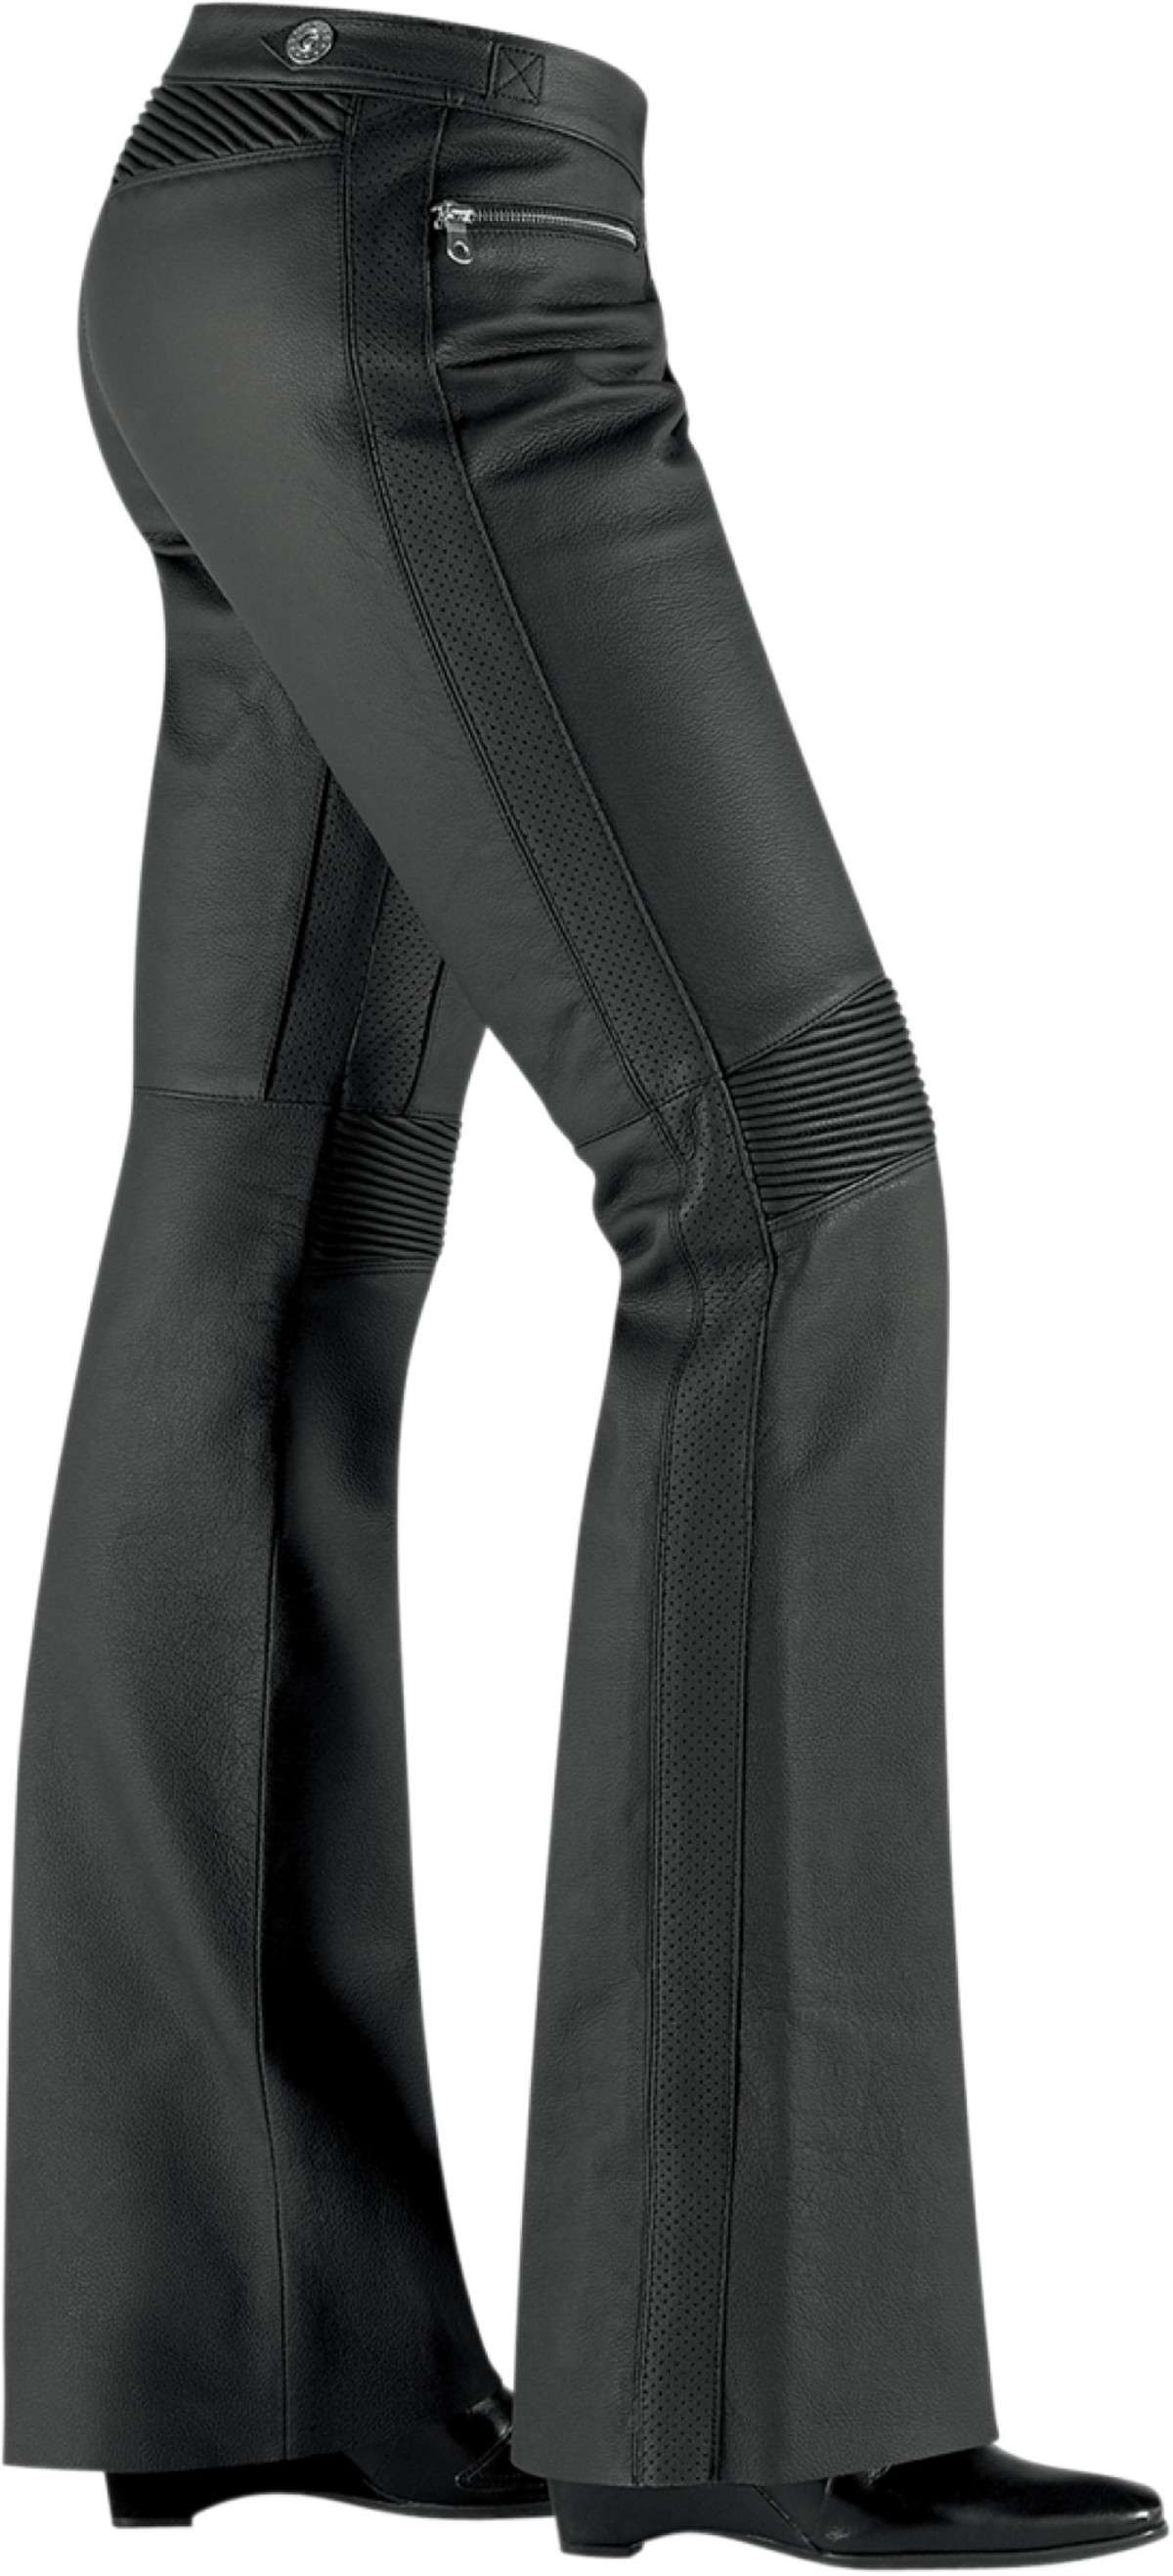 Perfect Women Clothing Gucci Leather Riding Pants W Tags